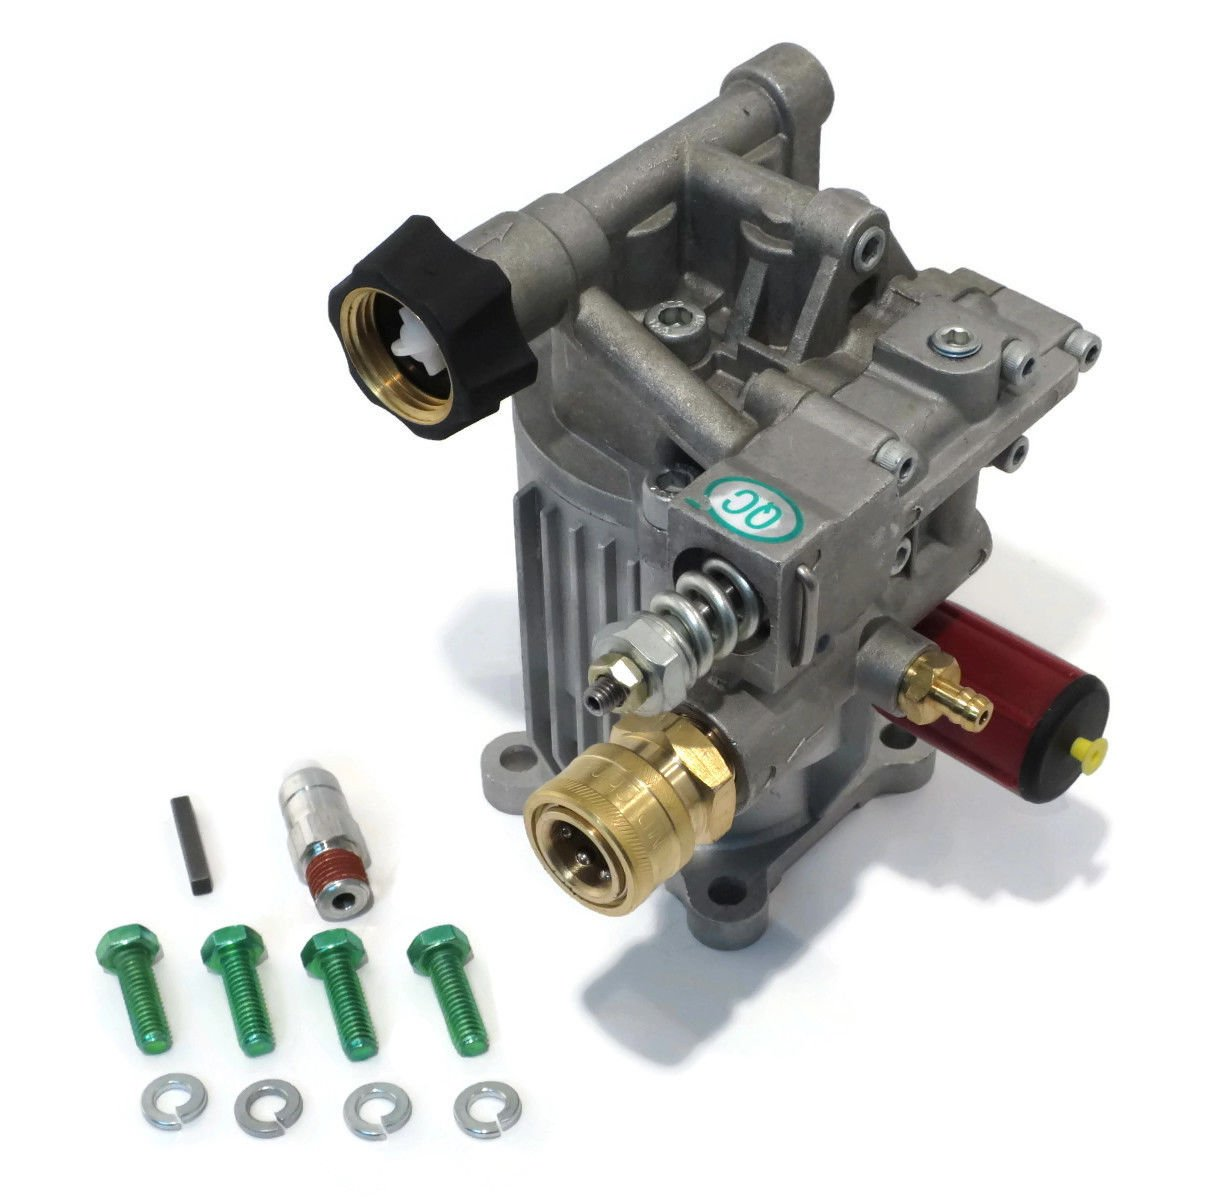 Himore Pressure Washer Pump Porter Cable A01801 D28744 A14292 on XR2500 & XR2600 Excell by The ROP Shop